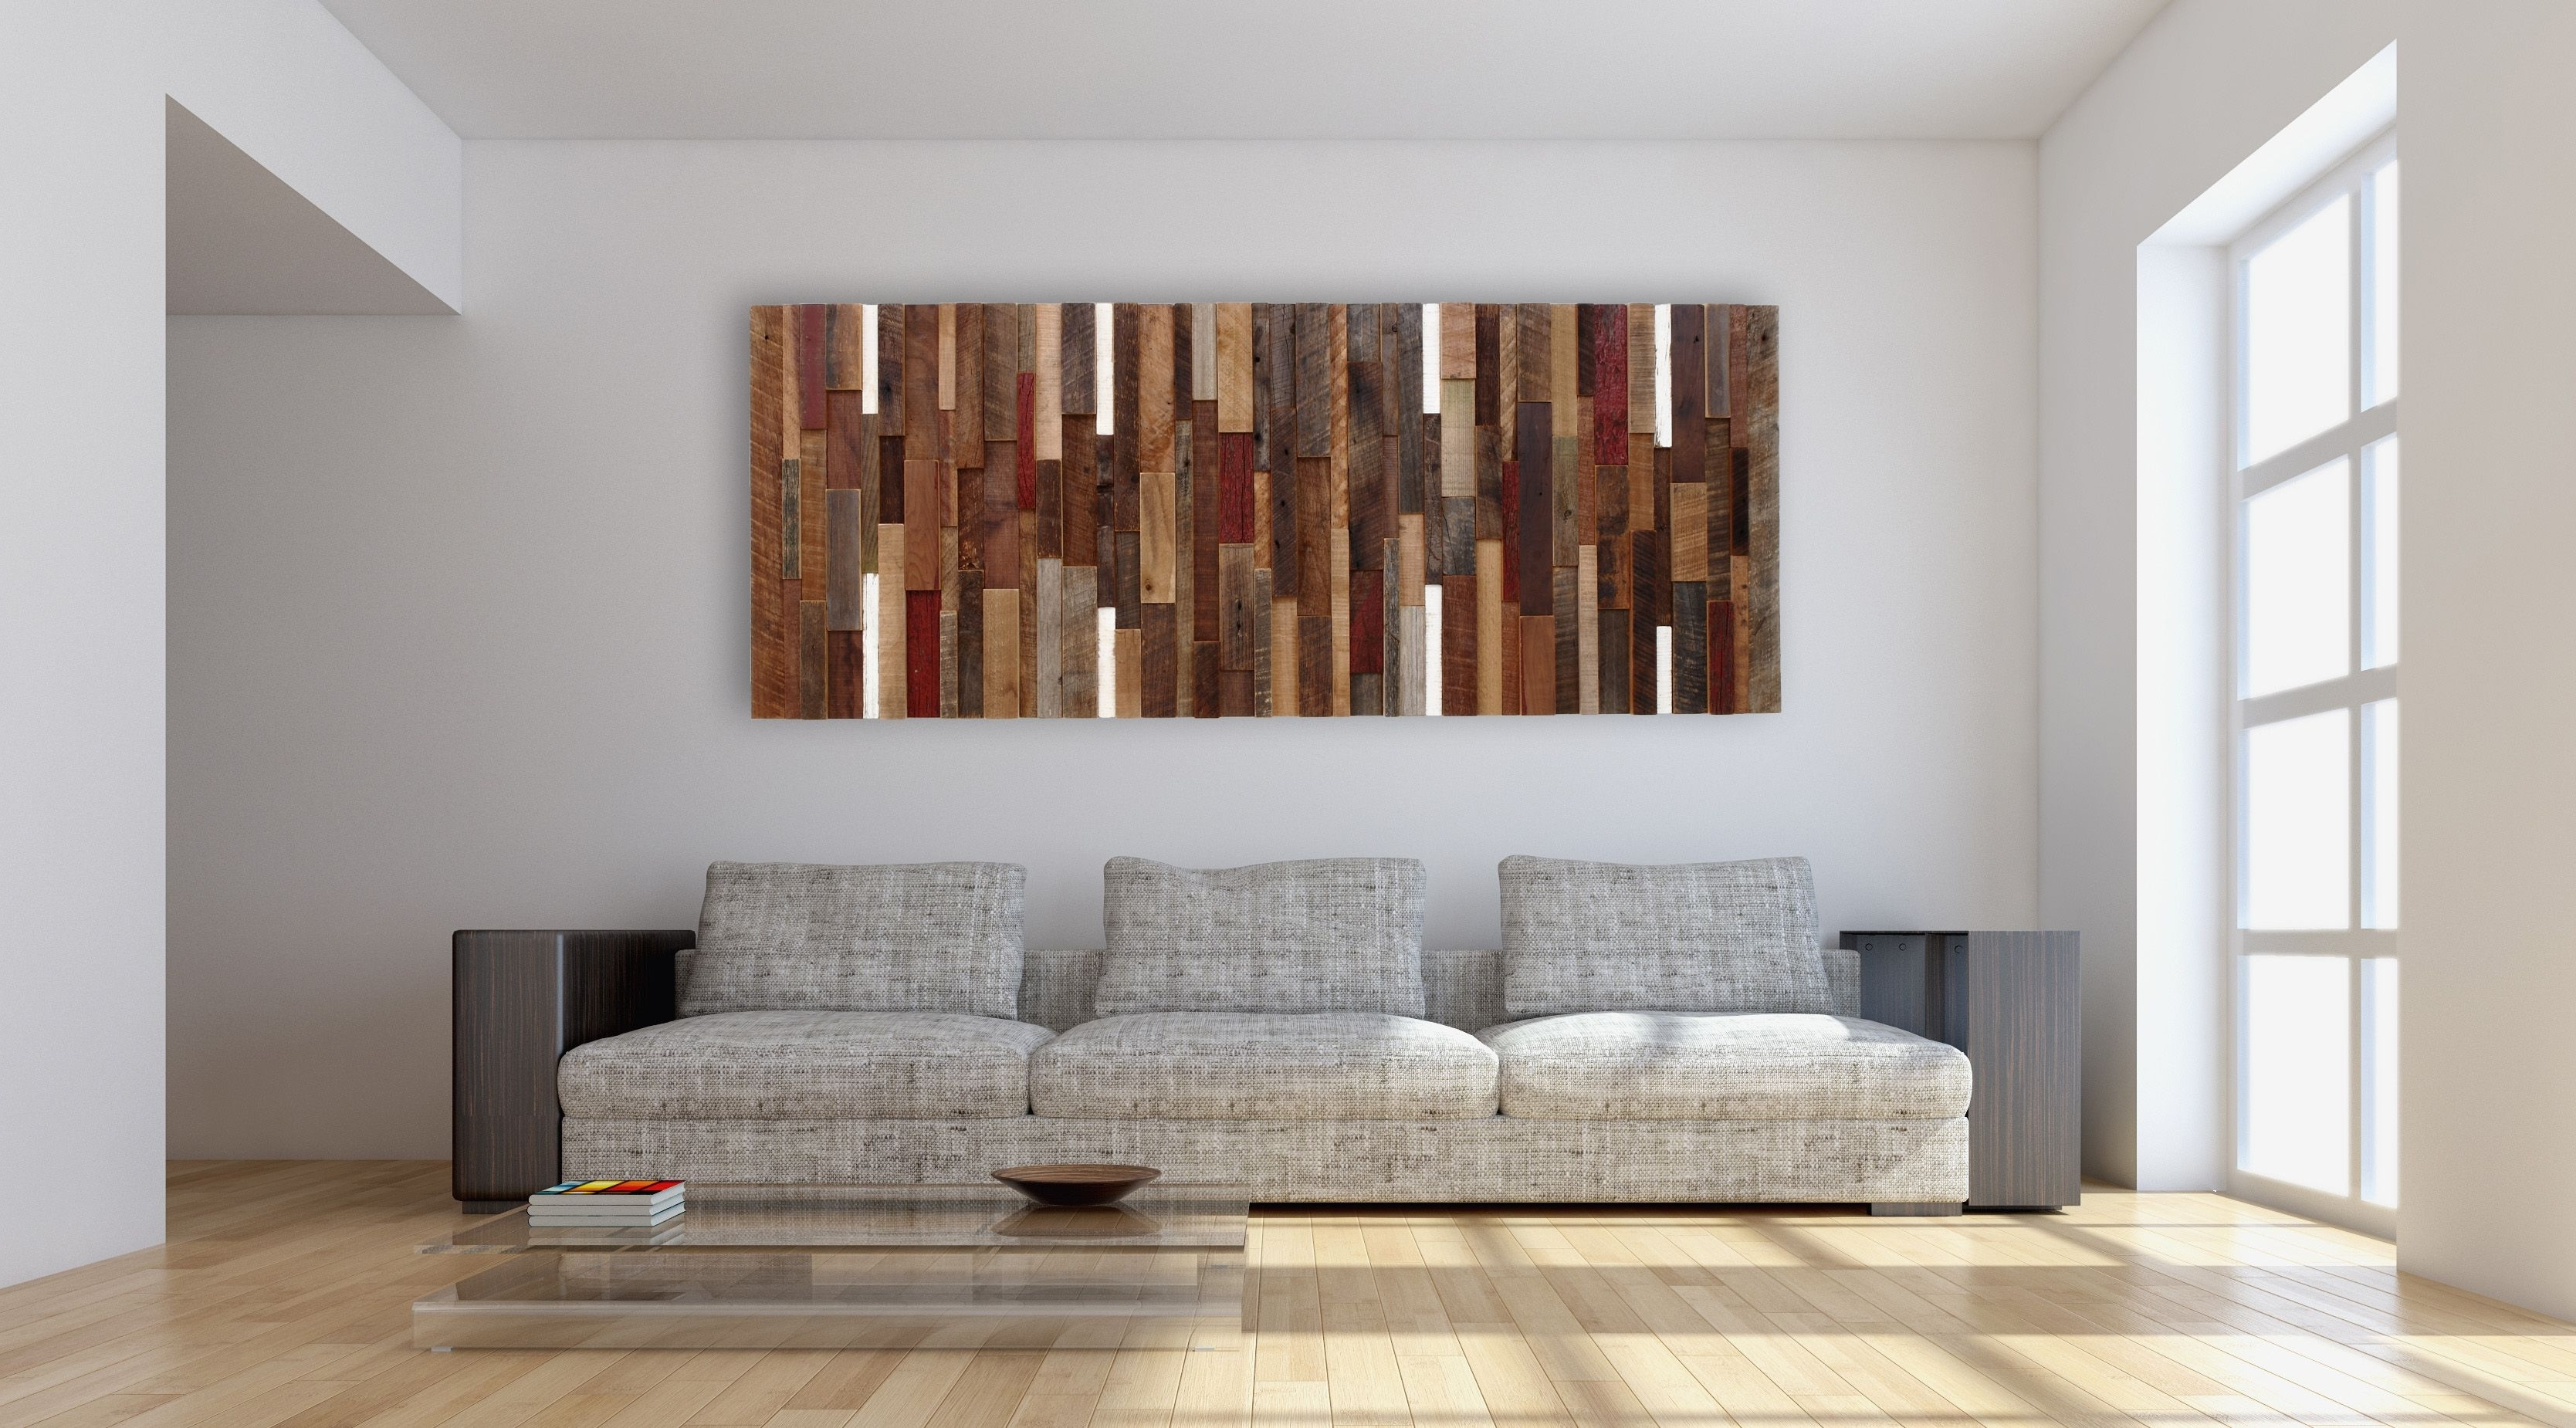 Hand Made Reclaimed Wood Wall Art, Made Intirely Of Reclaimed Barn Within Latest Wall Art On Wood (Gallery 14 of 15)